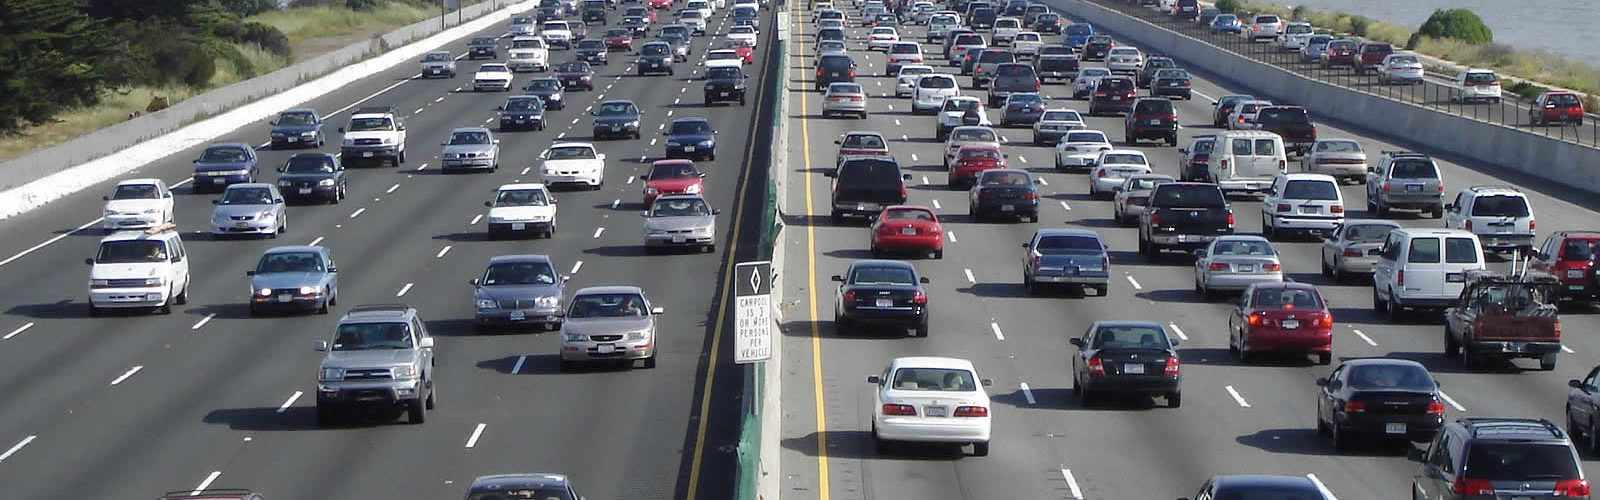 traffic-los-angeles-bouchons-raccourcis-conseils-une